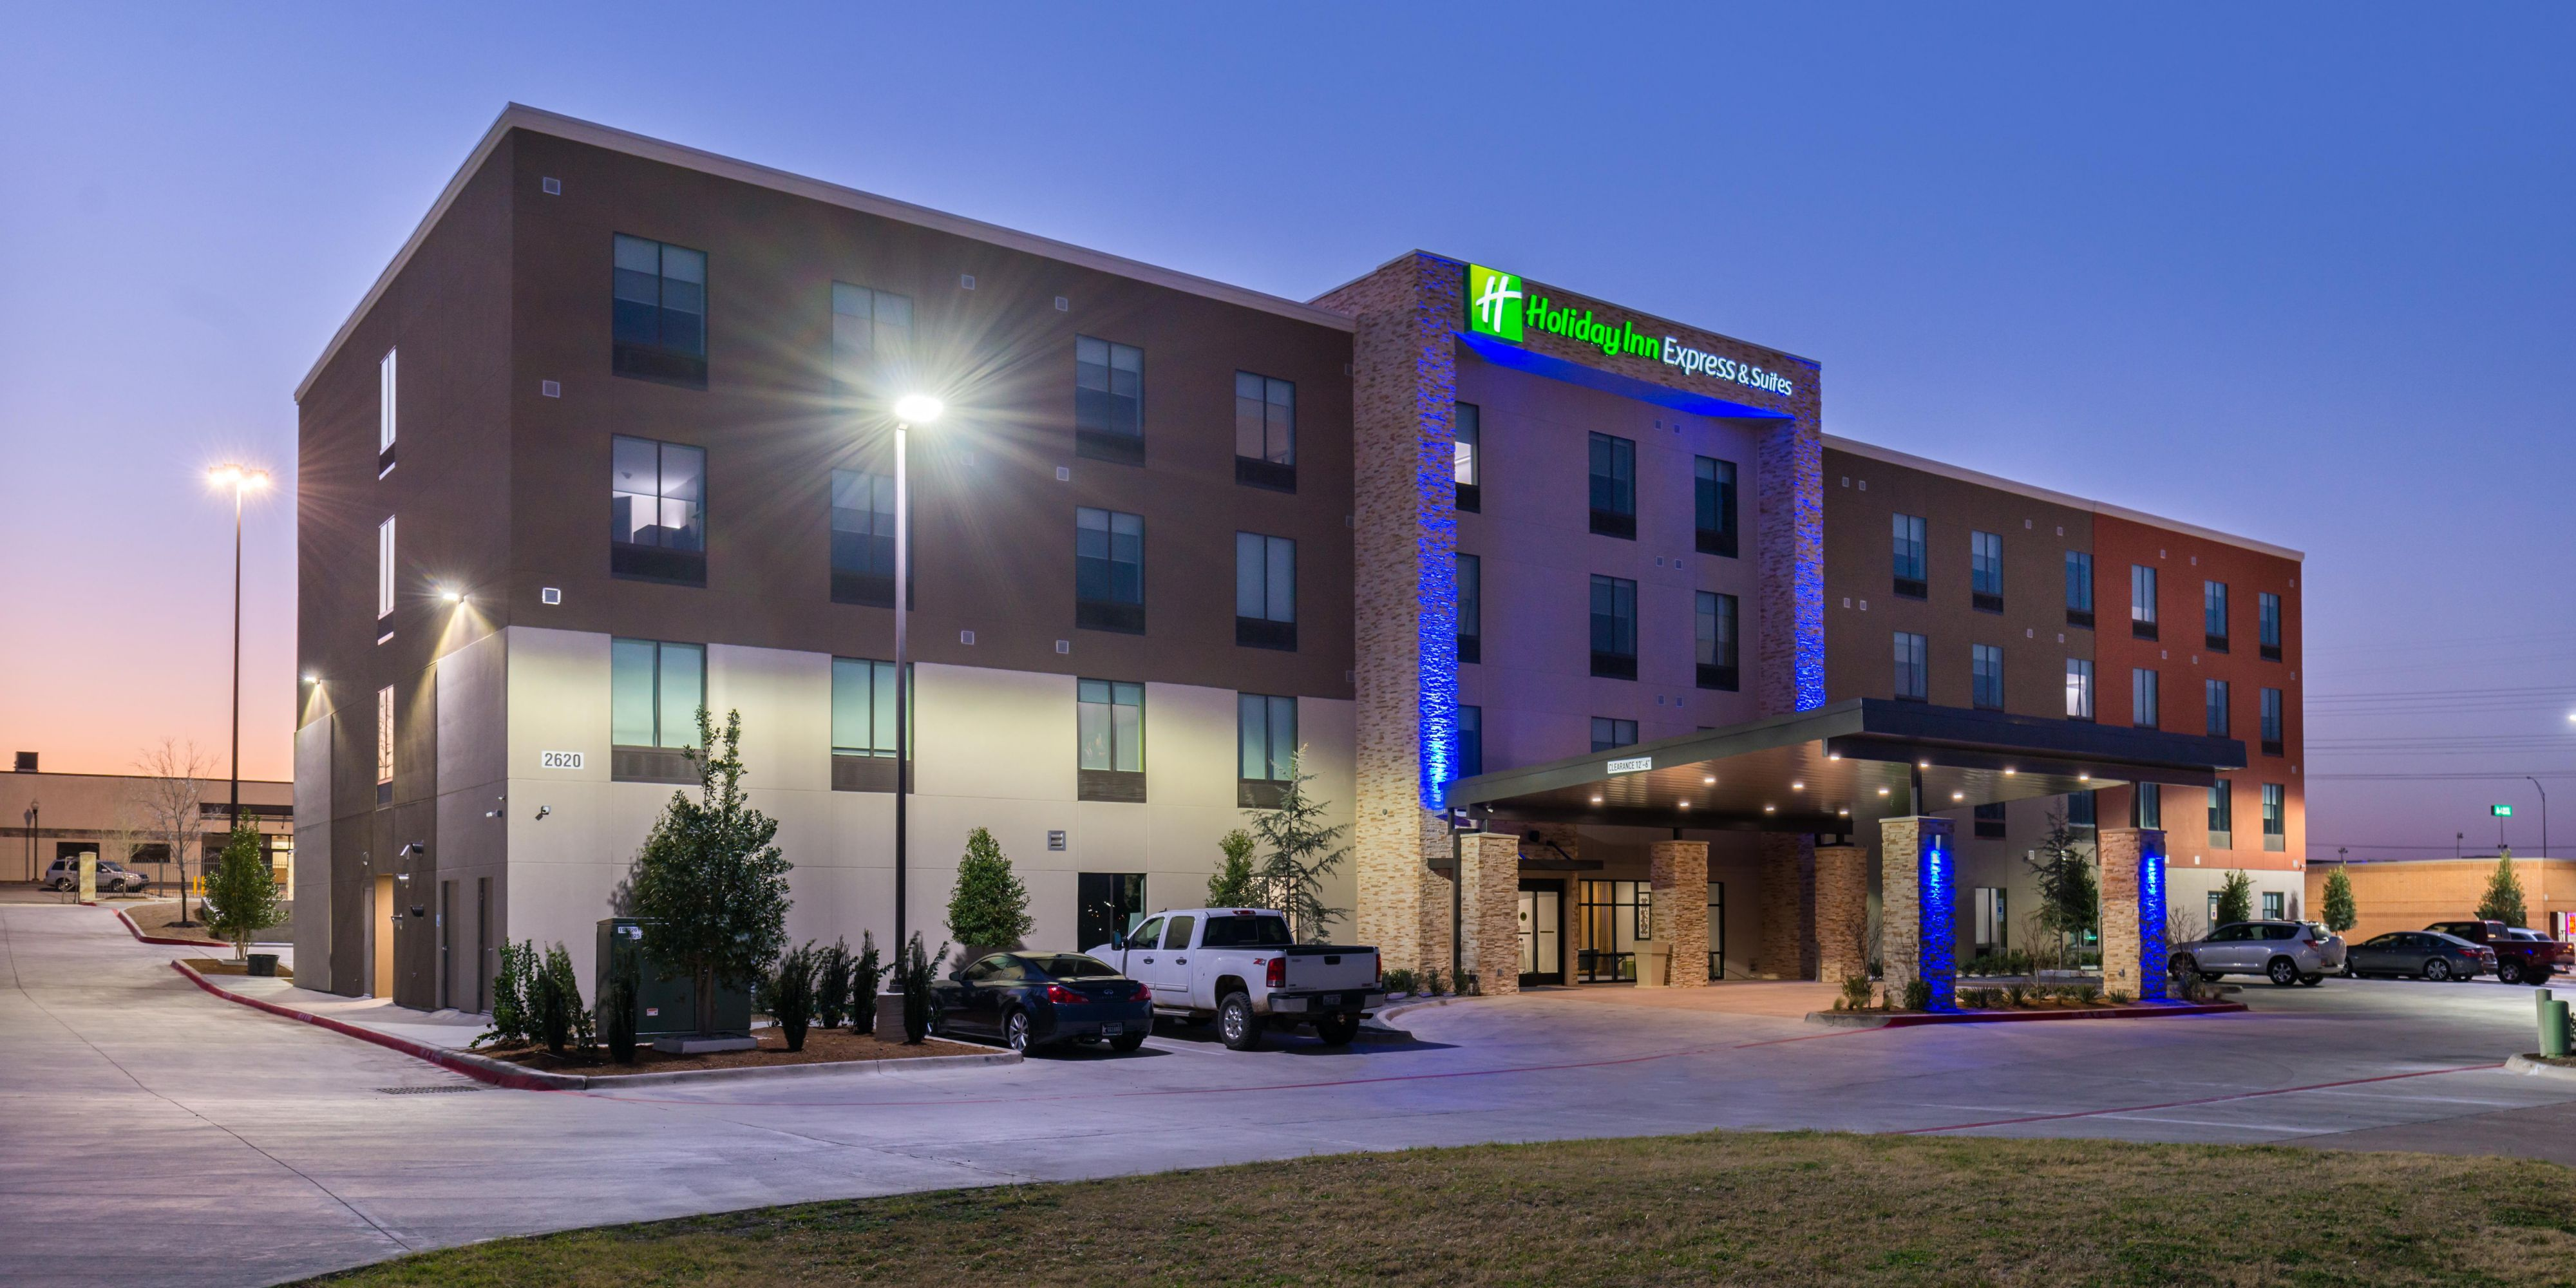 Holiday Inn Express And Suites Fort Worth 4370355376